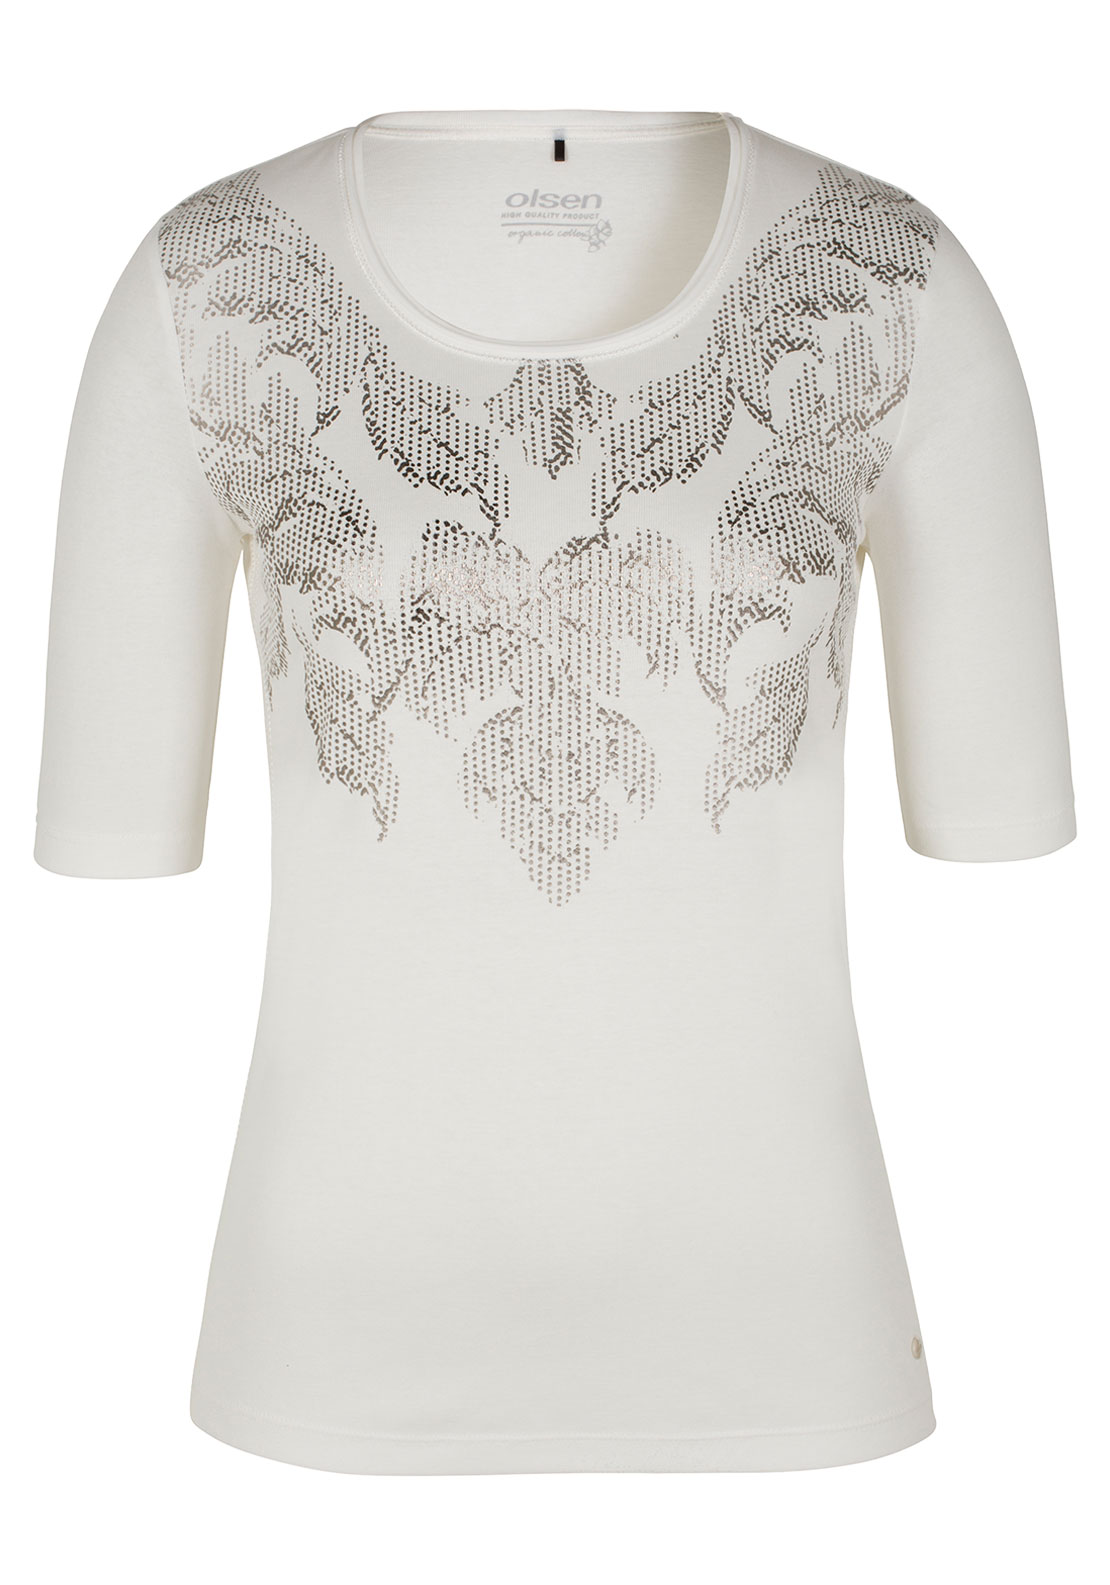 Olsen Metallic Print Half Sleeve Top, Off White